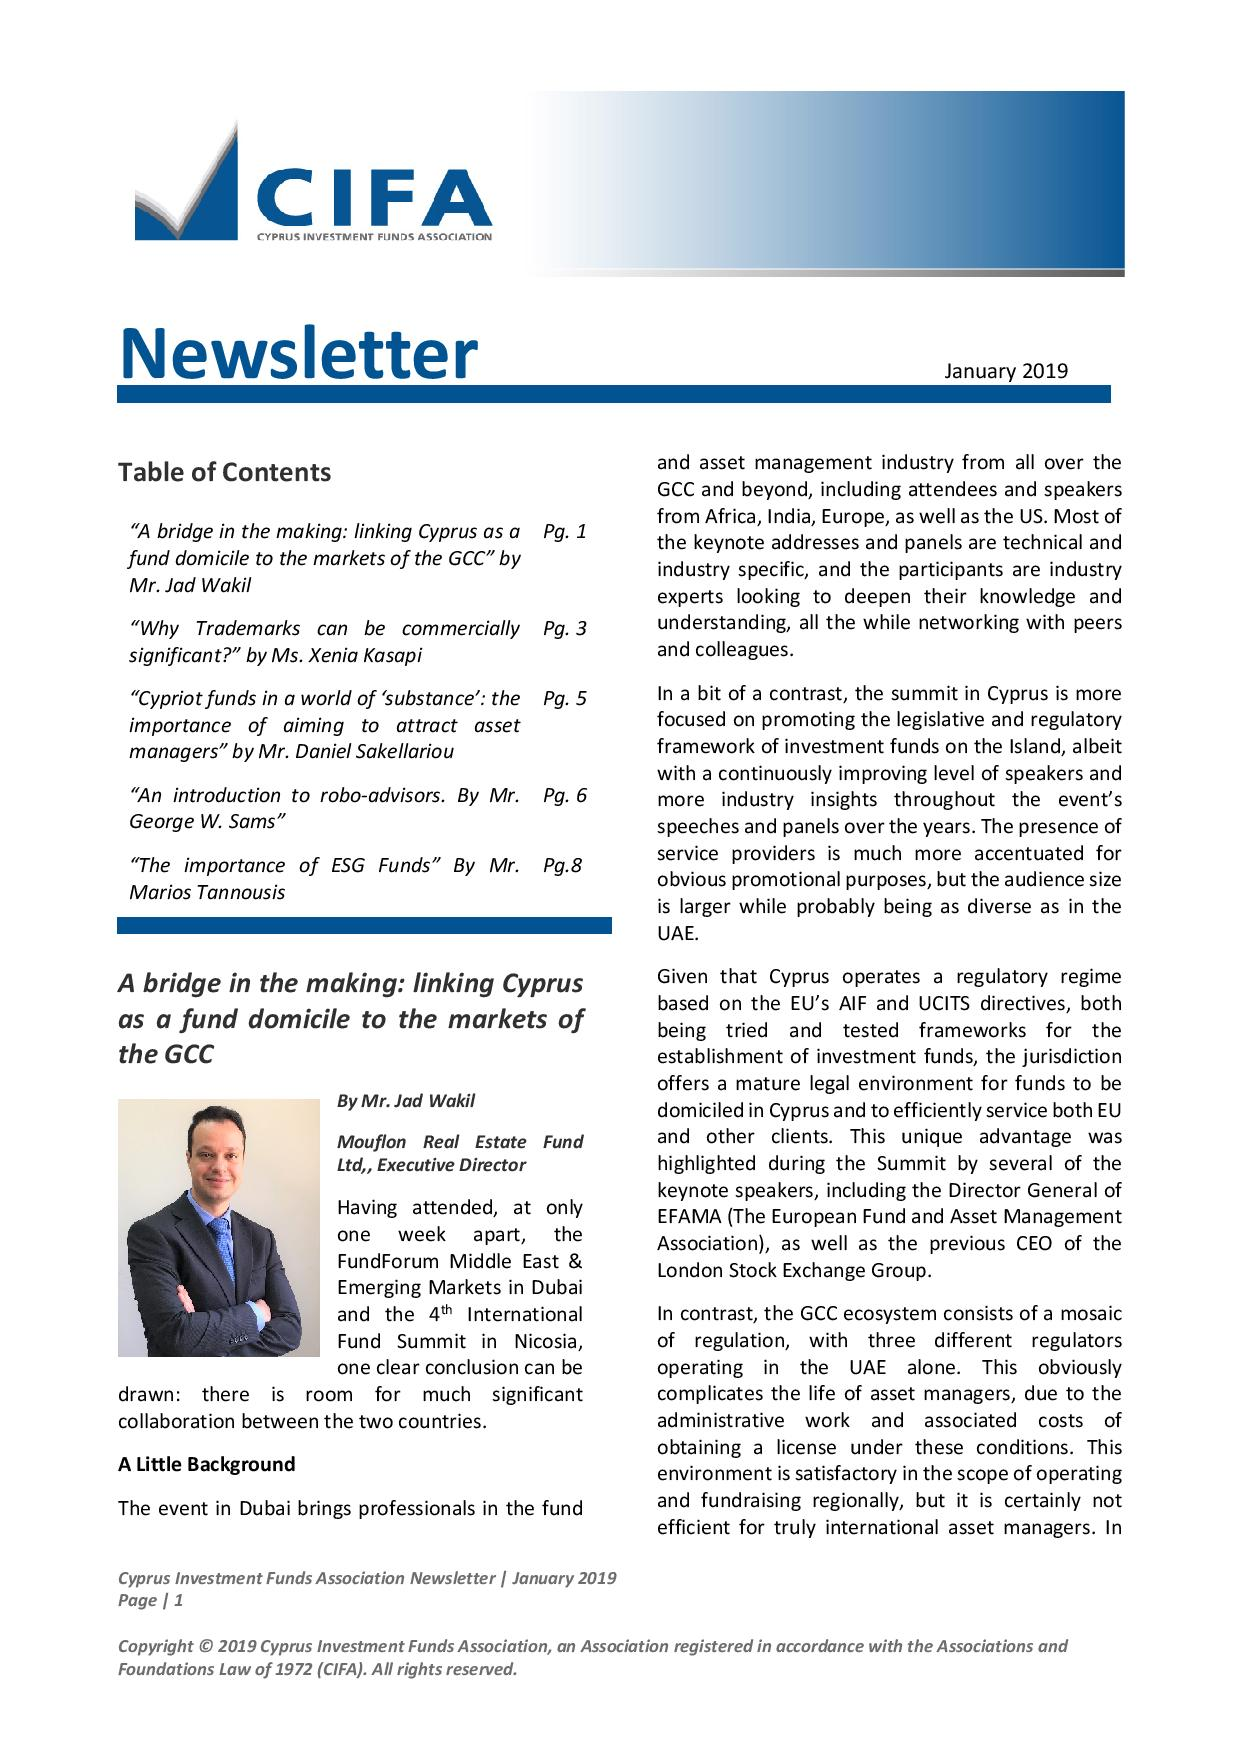 CIFA Newsletter January 2019